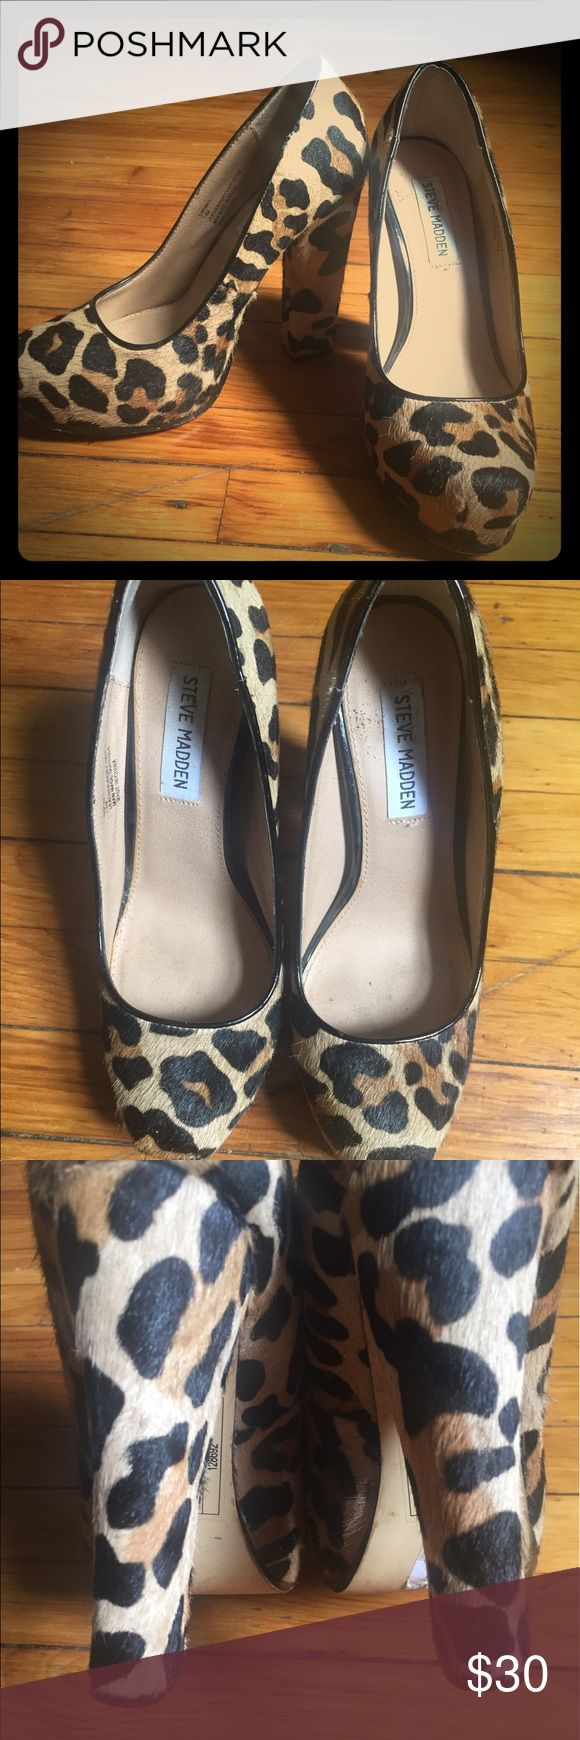 Steve Madden pony hair heels So cute!! Steve Madden pony hair heels are on trend and go with everything! Worn a handful of times and still look great! Some fraying on the back of the right shoe but not noticeable at all! Steve Madden Shoes Heels